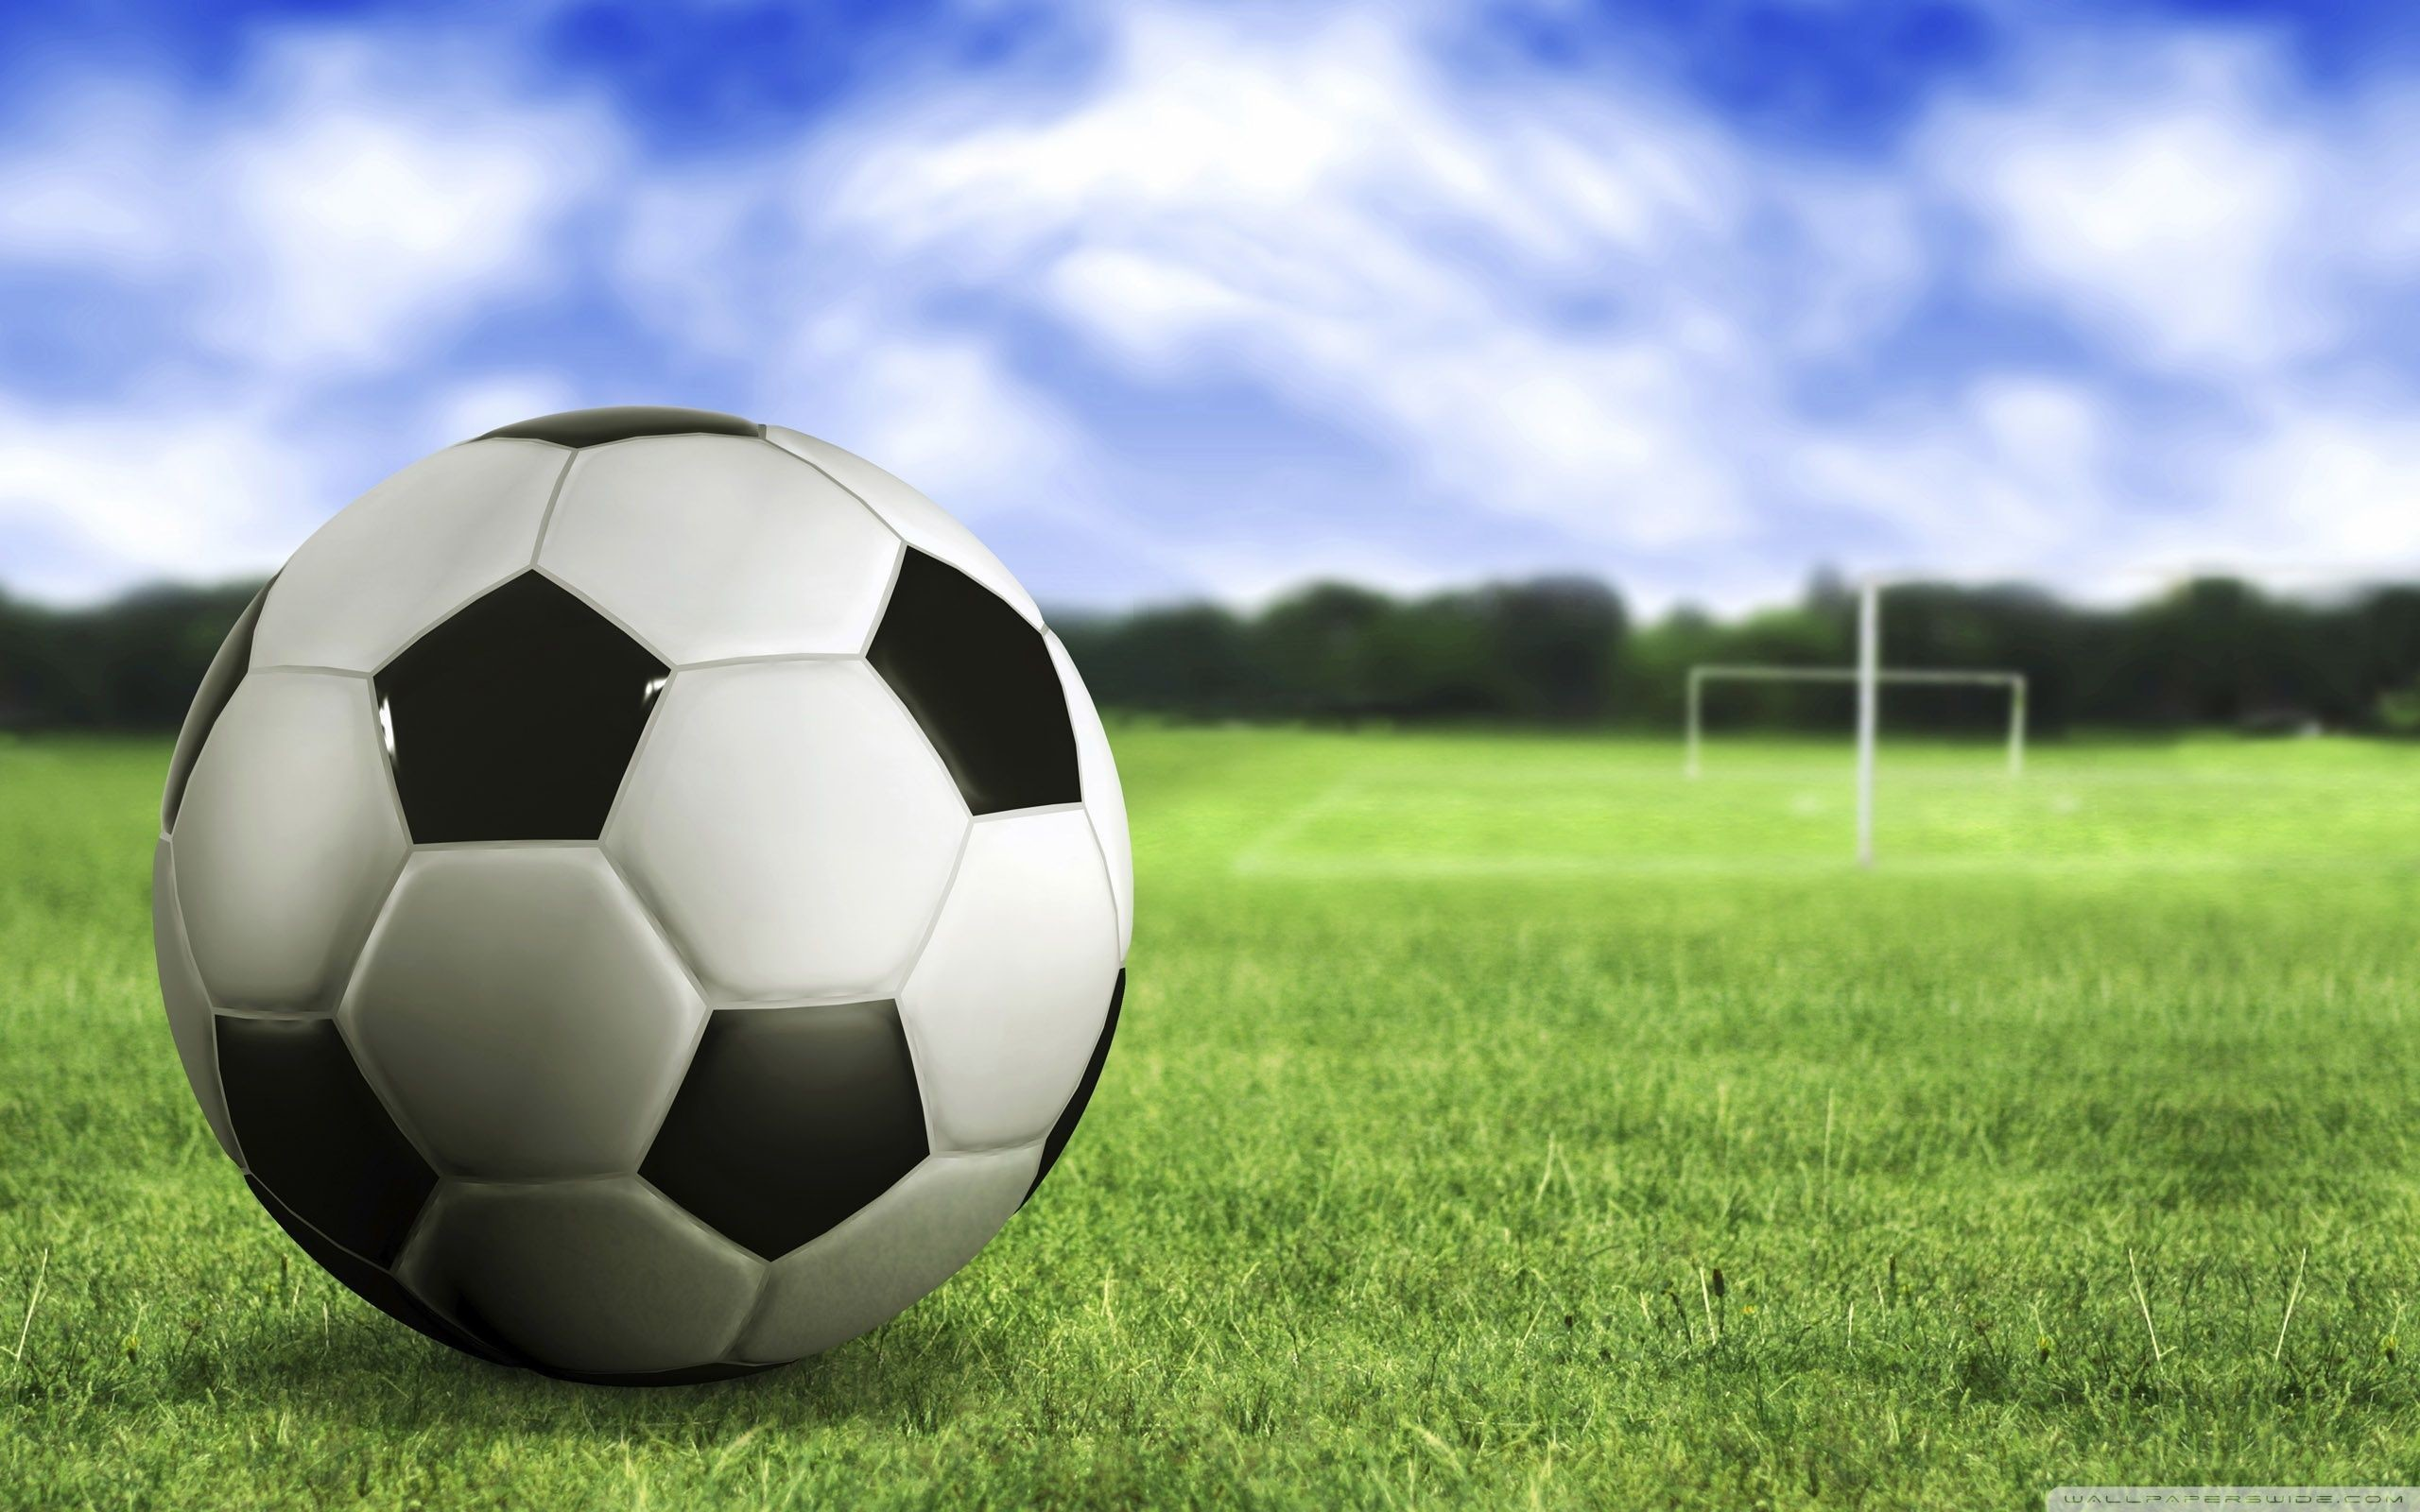 2560x1600 Green grass, Blue sky, Soccer ball, Soccer field wallpapers and .